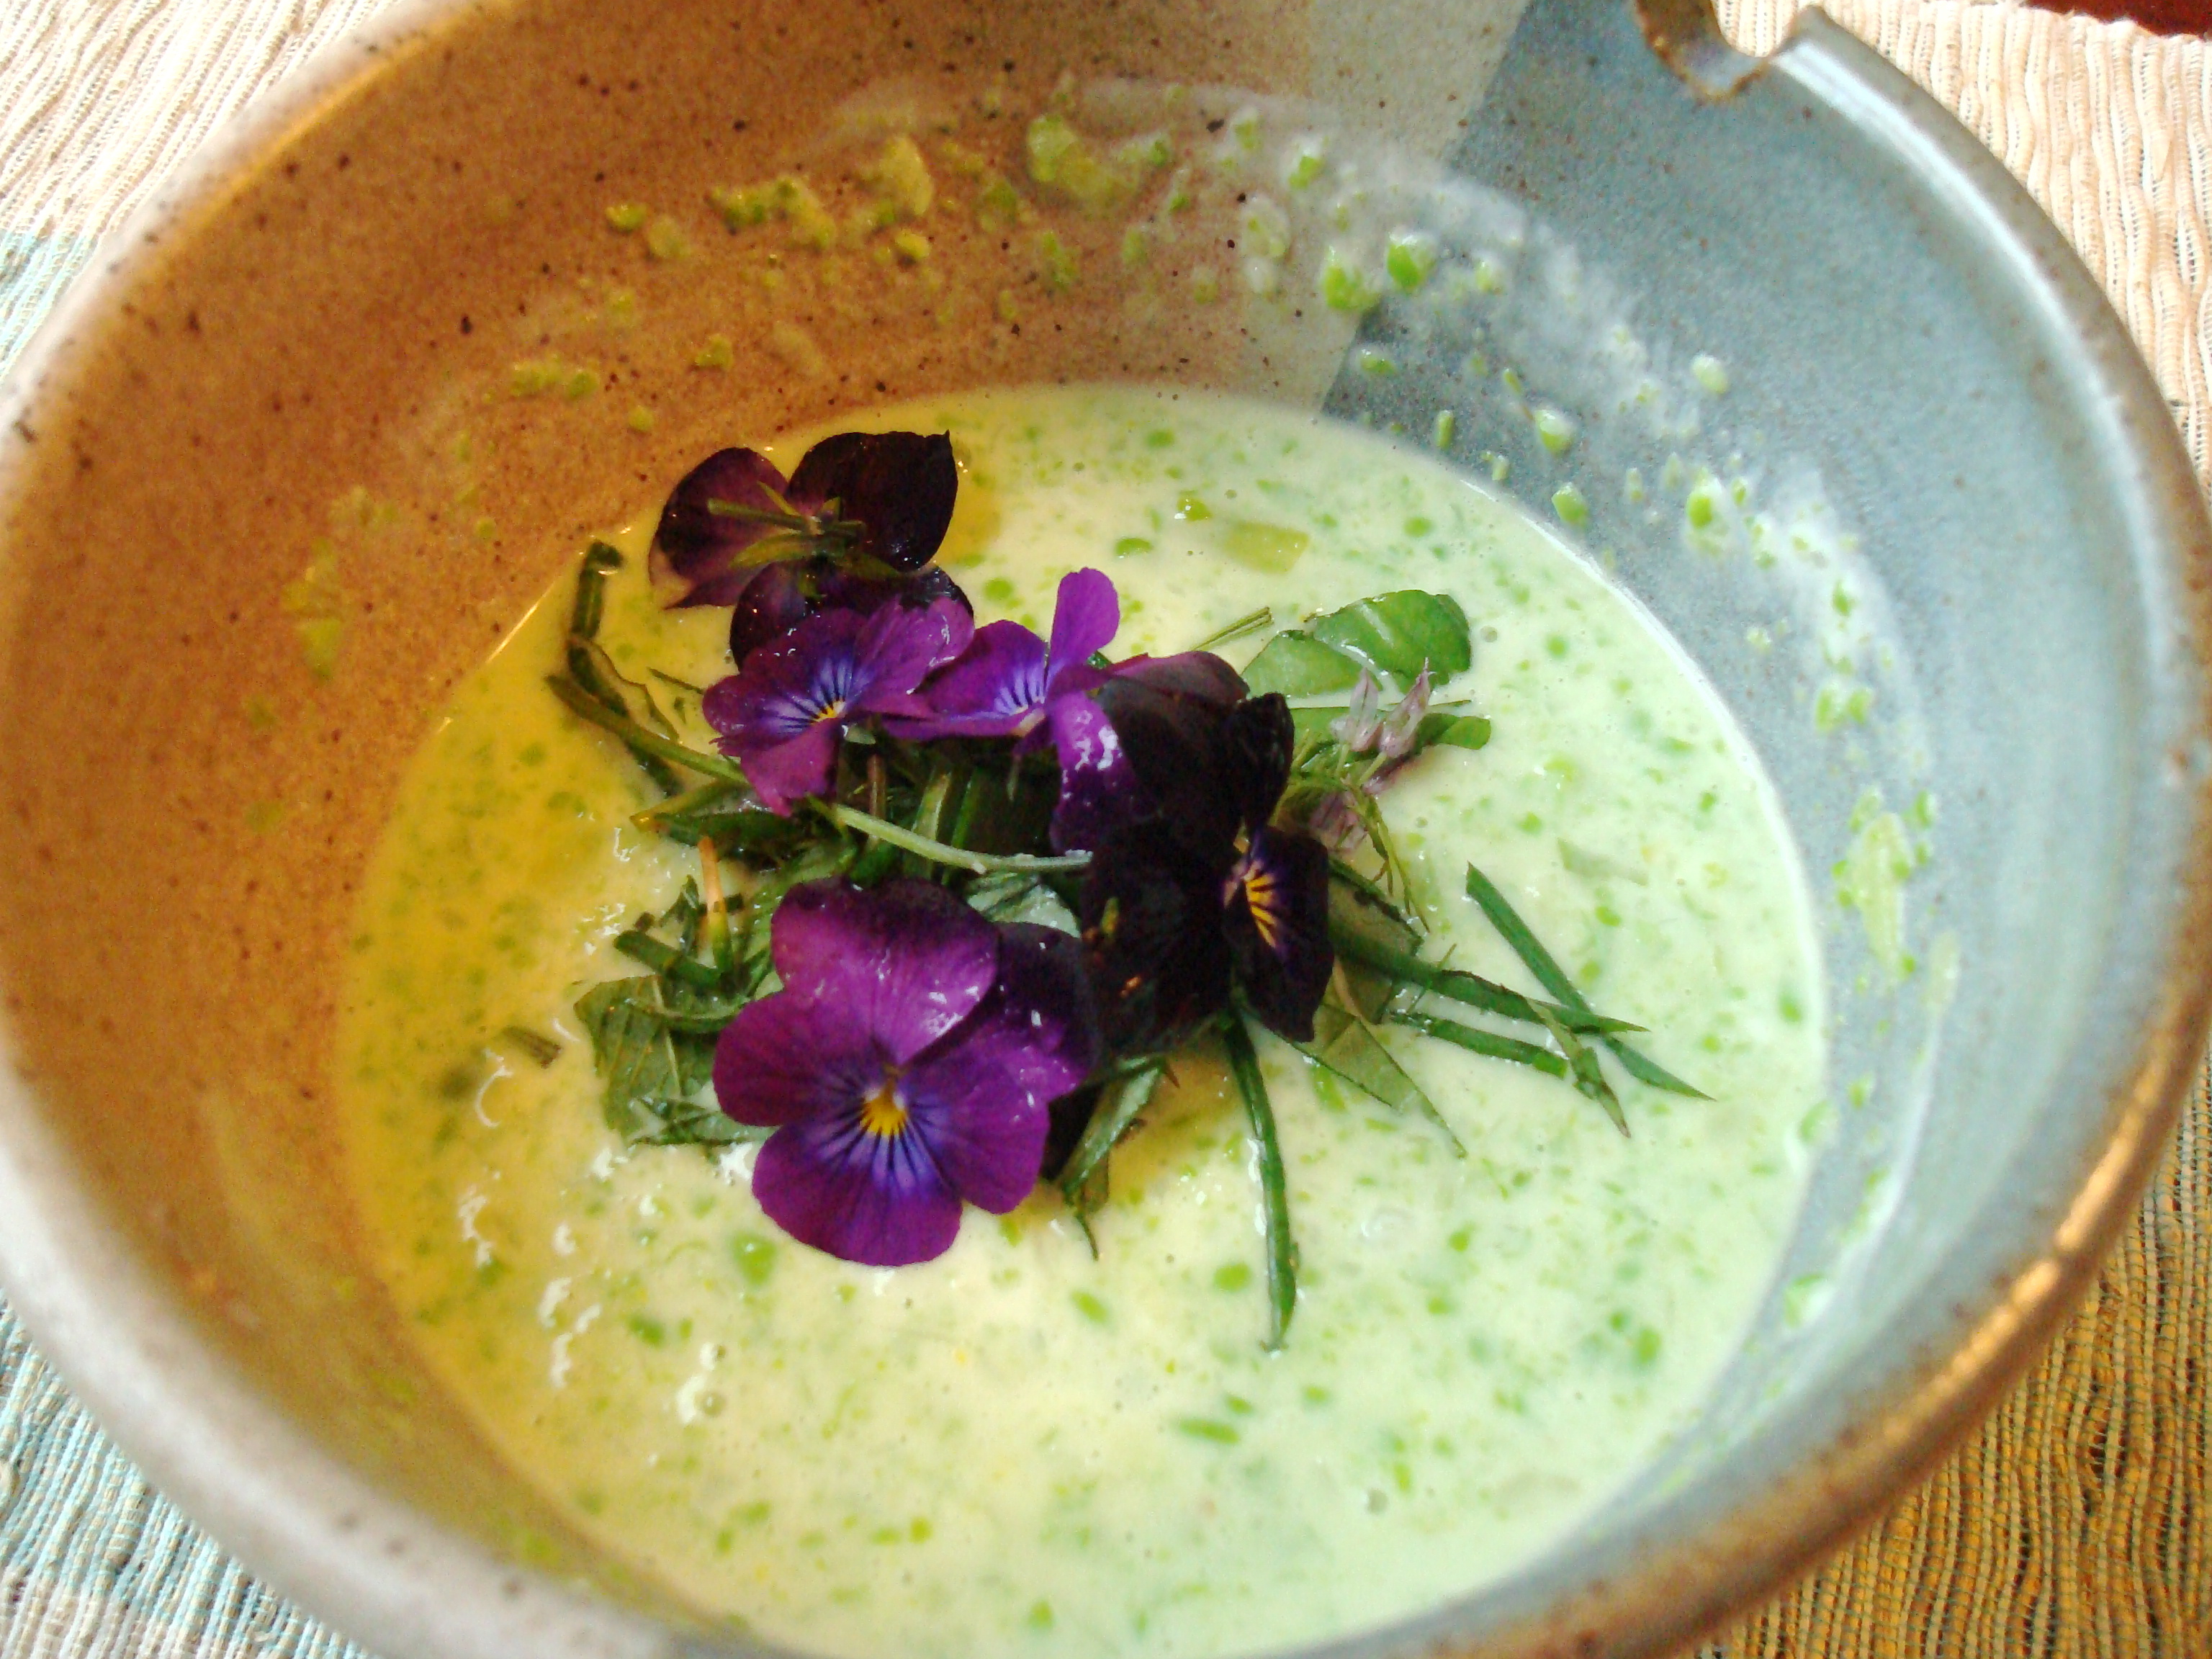 Chilled fresh pea soup